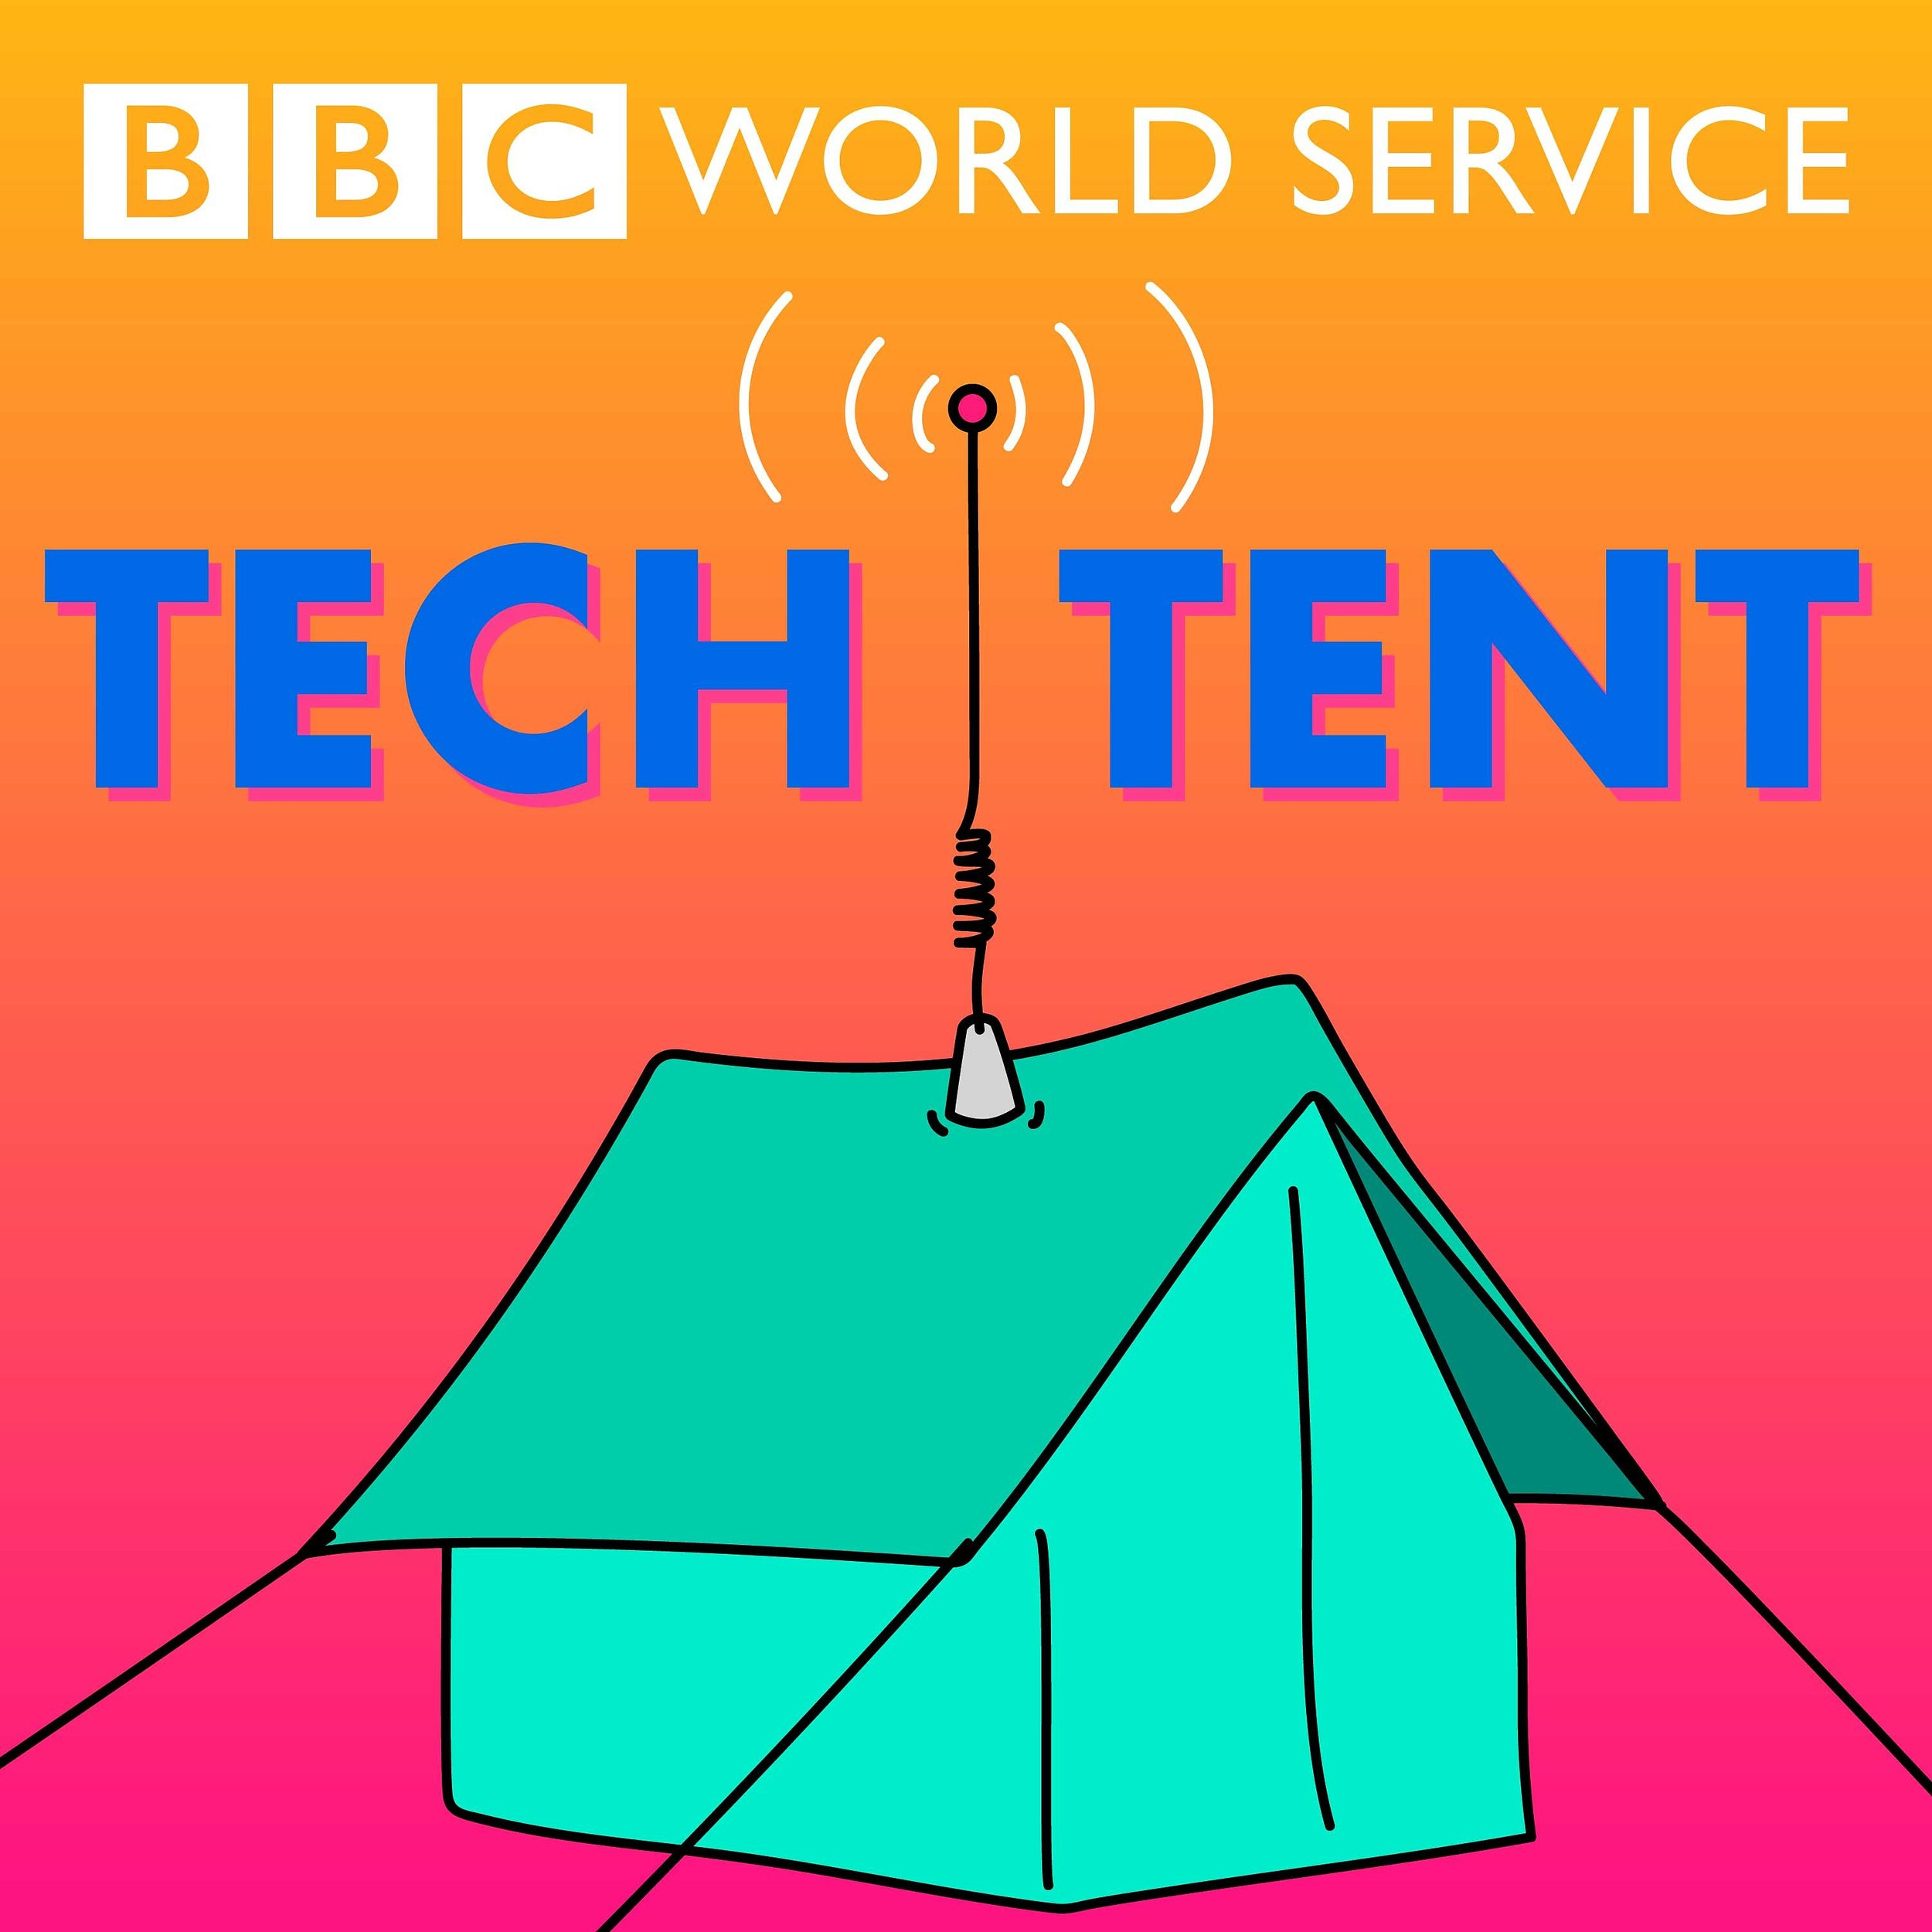 Interview with Tech Tent for the BBC World Service